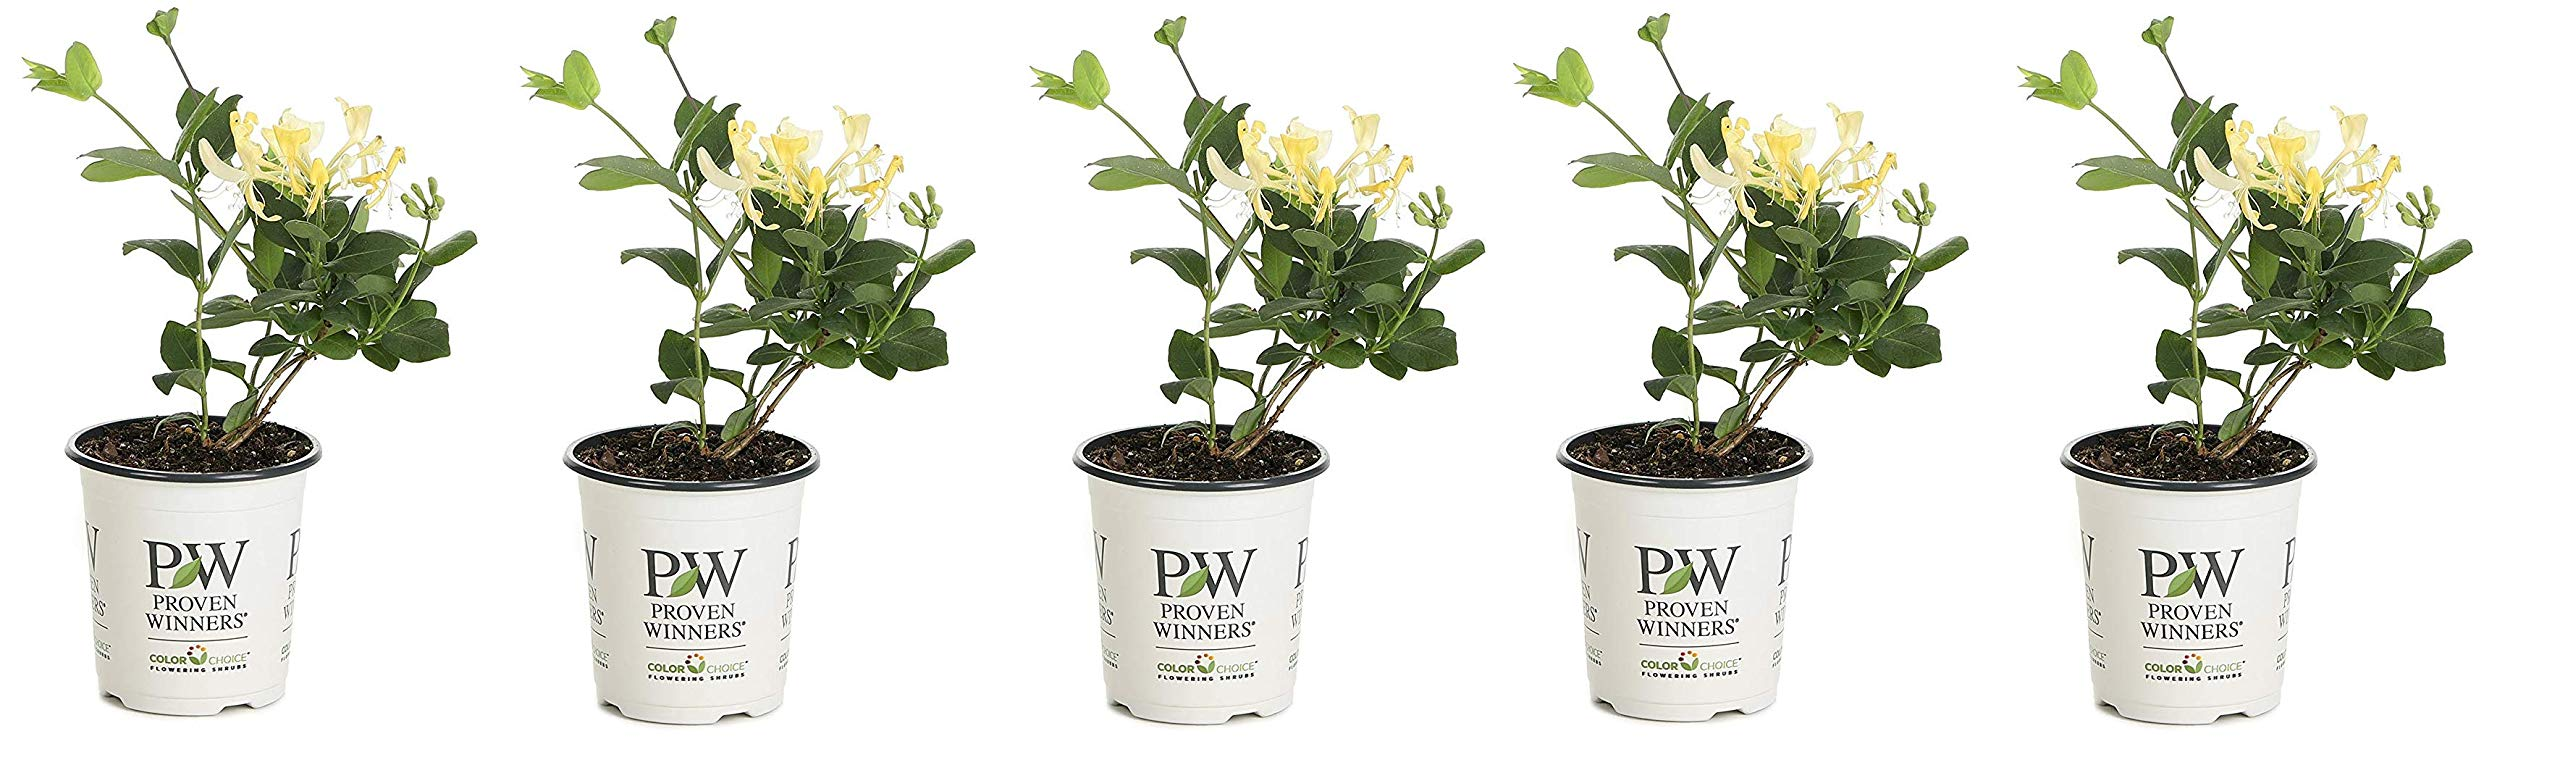 4.5 in. qt. Scentsation Honeysuckle (Lonicera) Live Shrub, Yellow Flowers and Red Berries (Fivе Расk) by Proven Winners (Image #1)